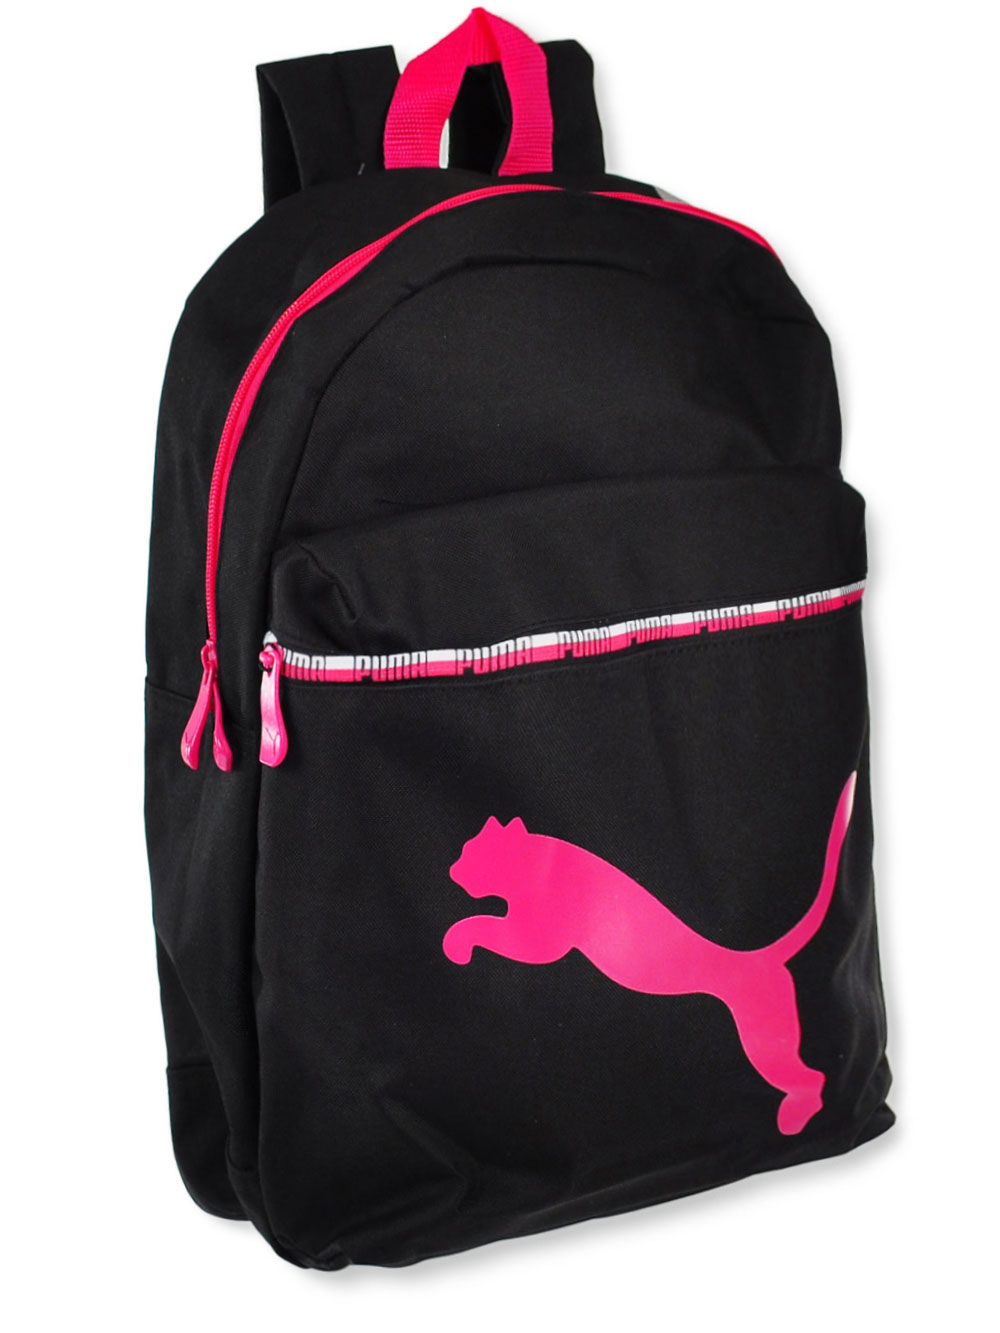 Backpack by Puma in Black/pink from